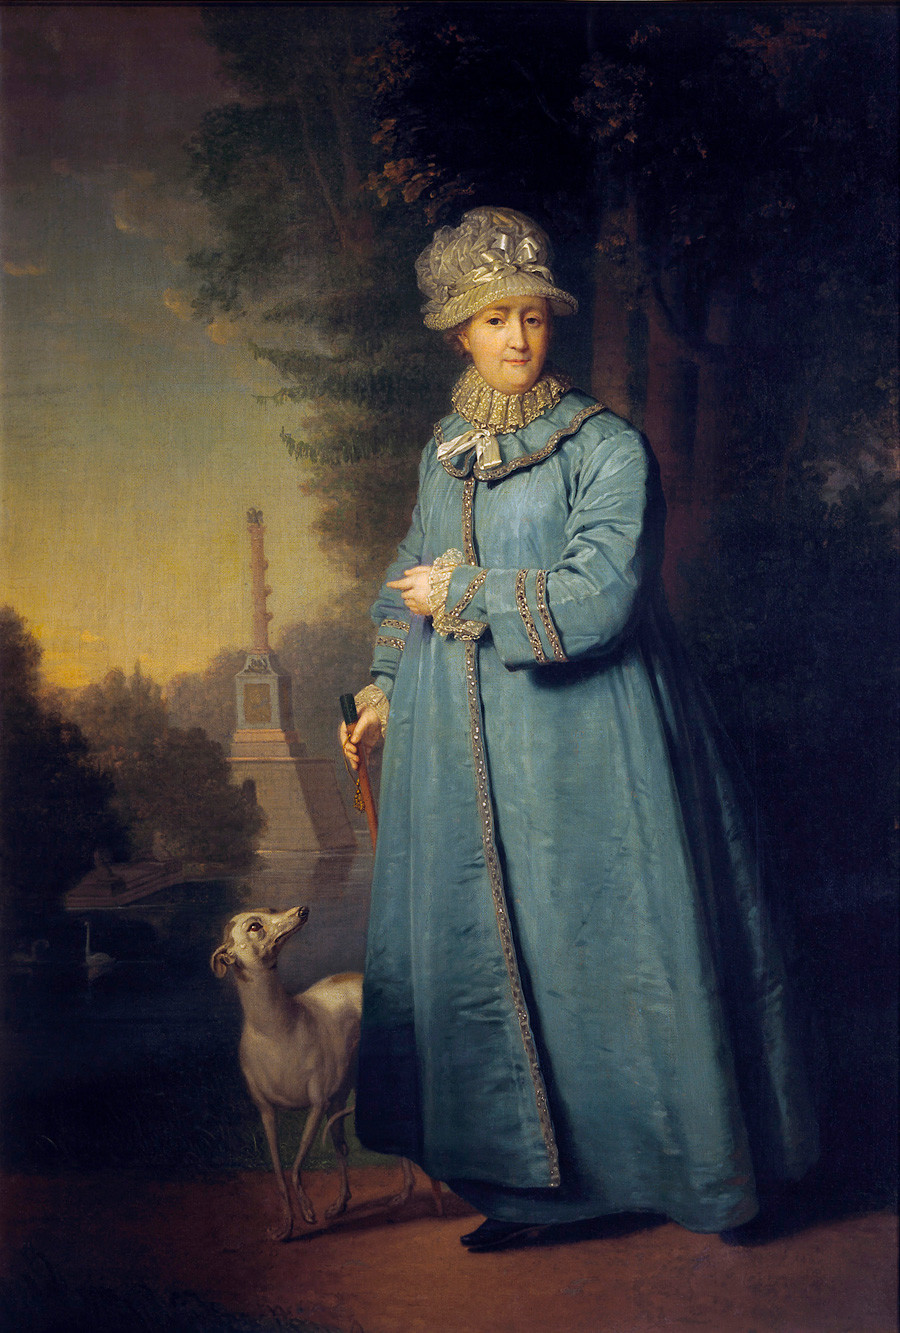 'Catherine the Great walking in Tsarskoye Selo Park' by Vladimir Borovikovsky, 1794